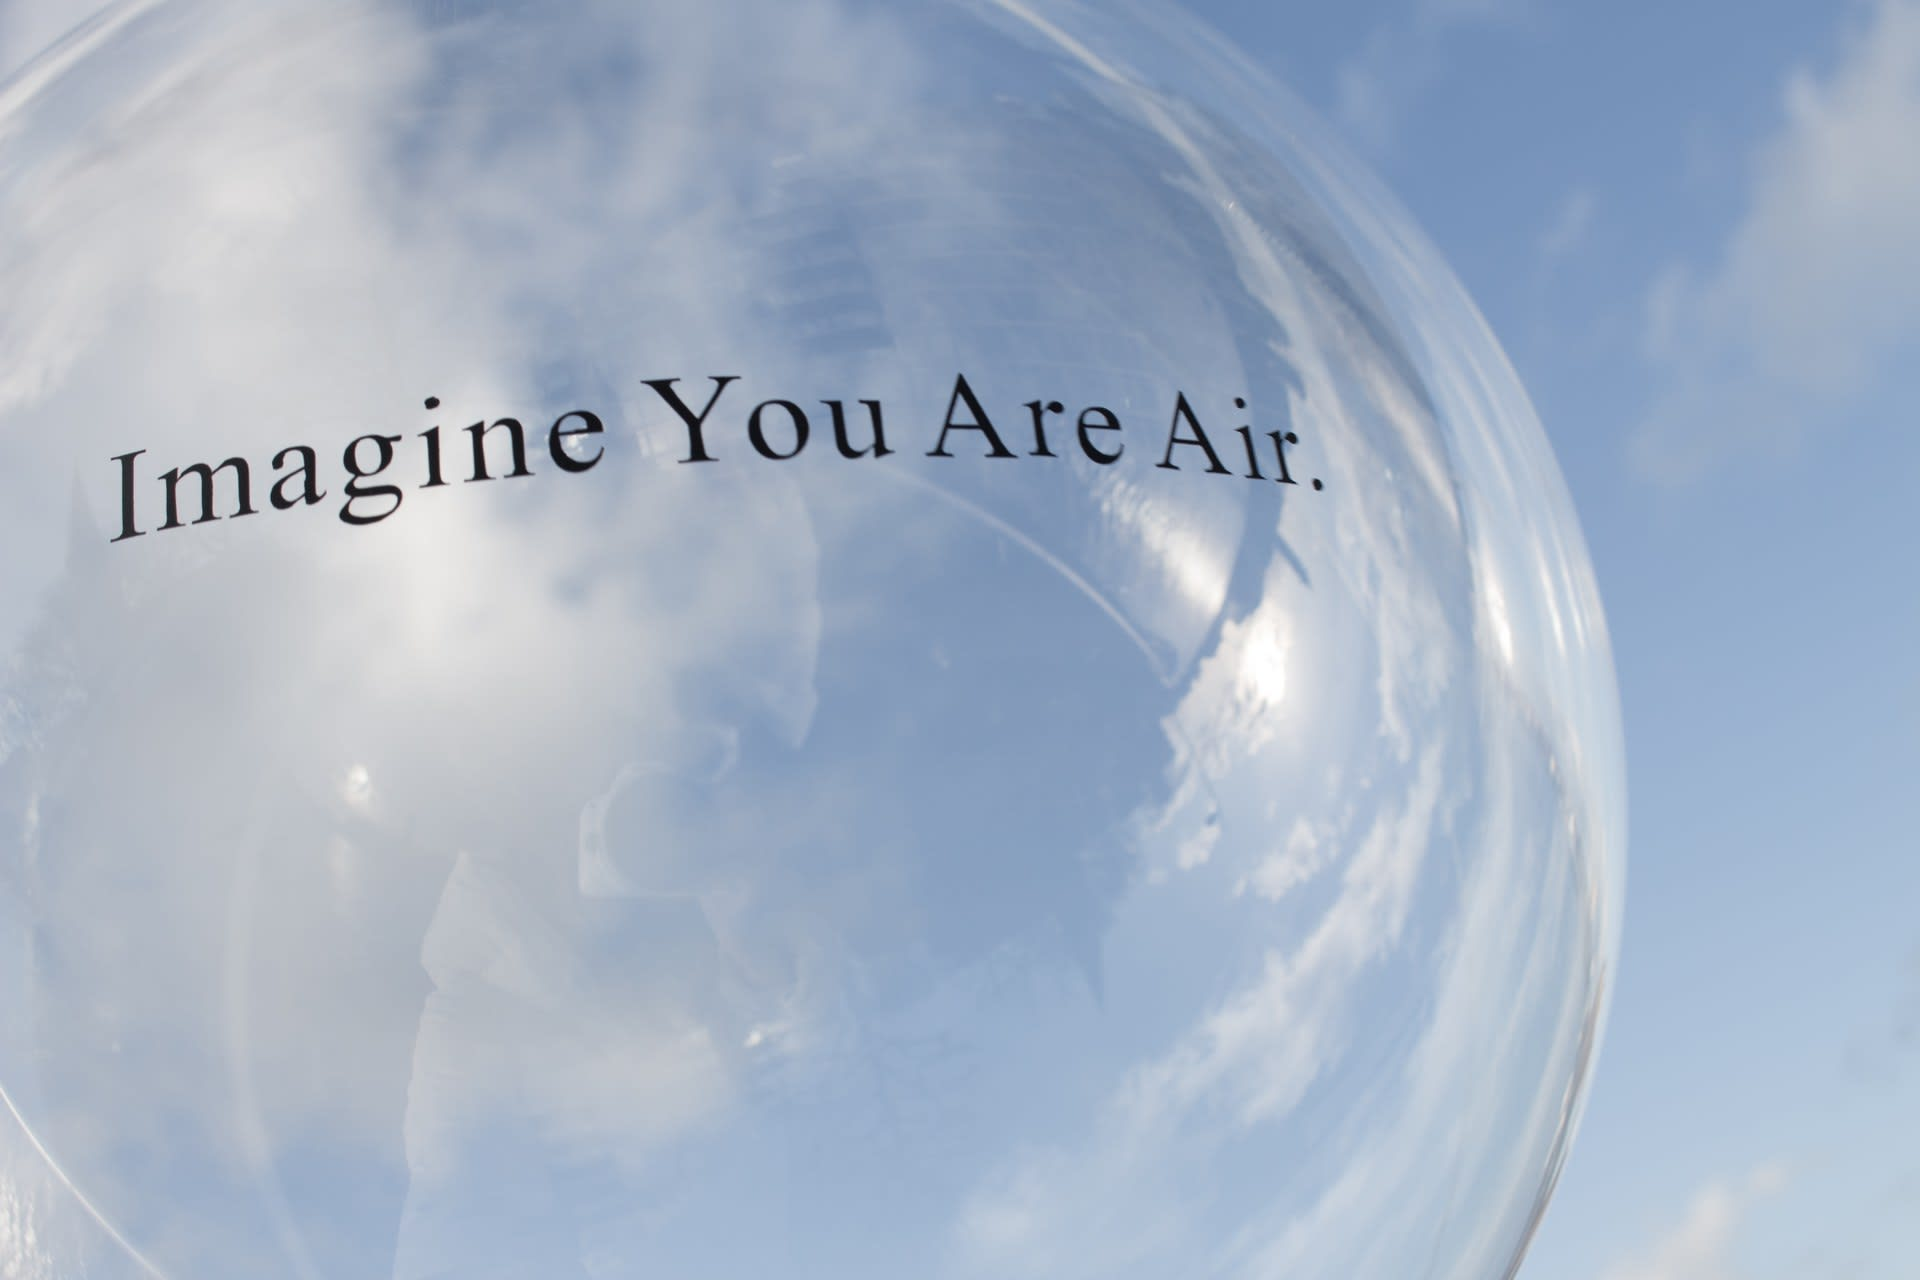 Imagine You Are Air